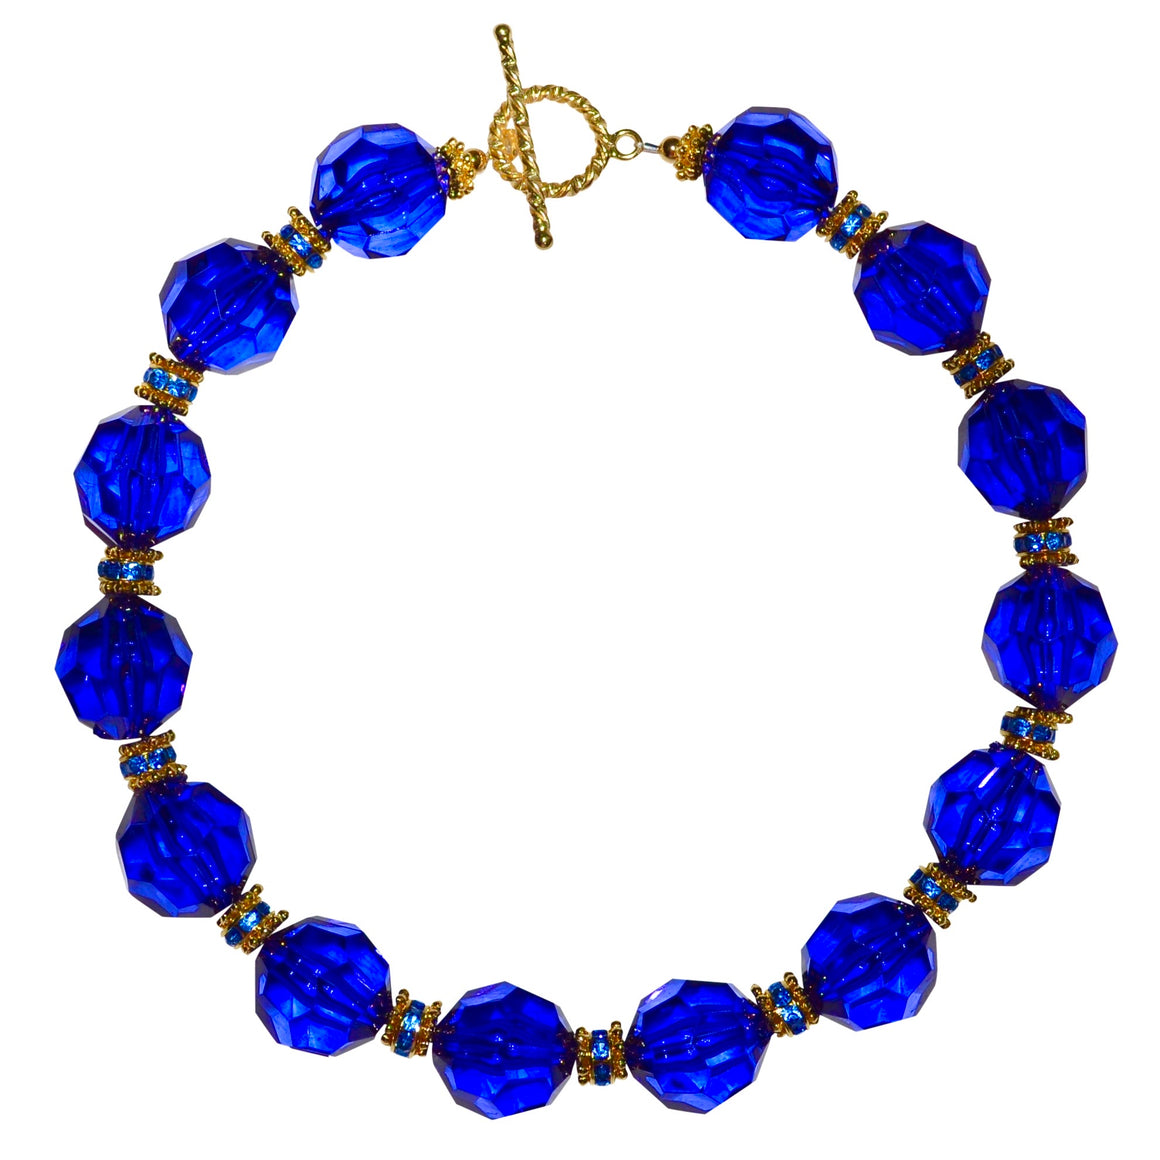 LUCITE NECKLACE IN FACETED COBALT LUCITE